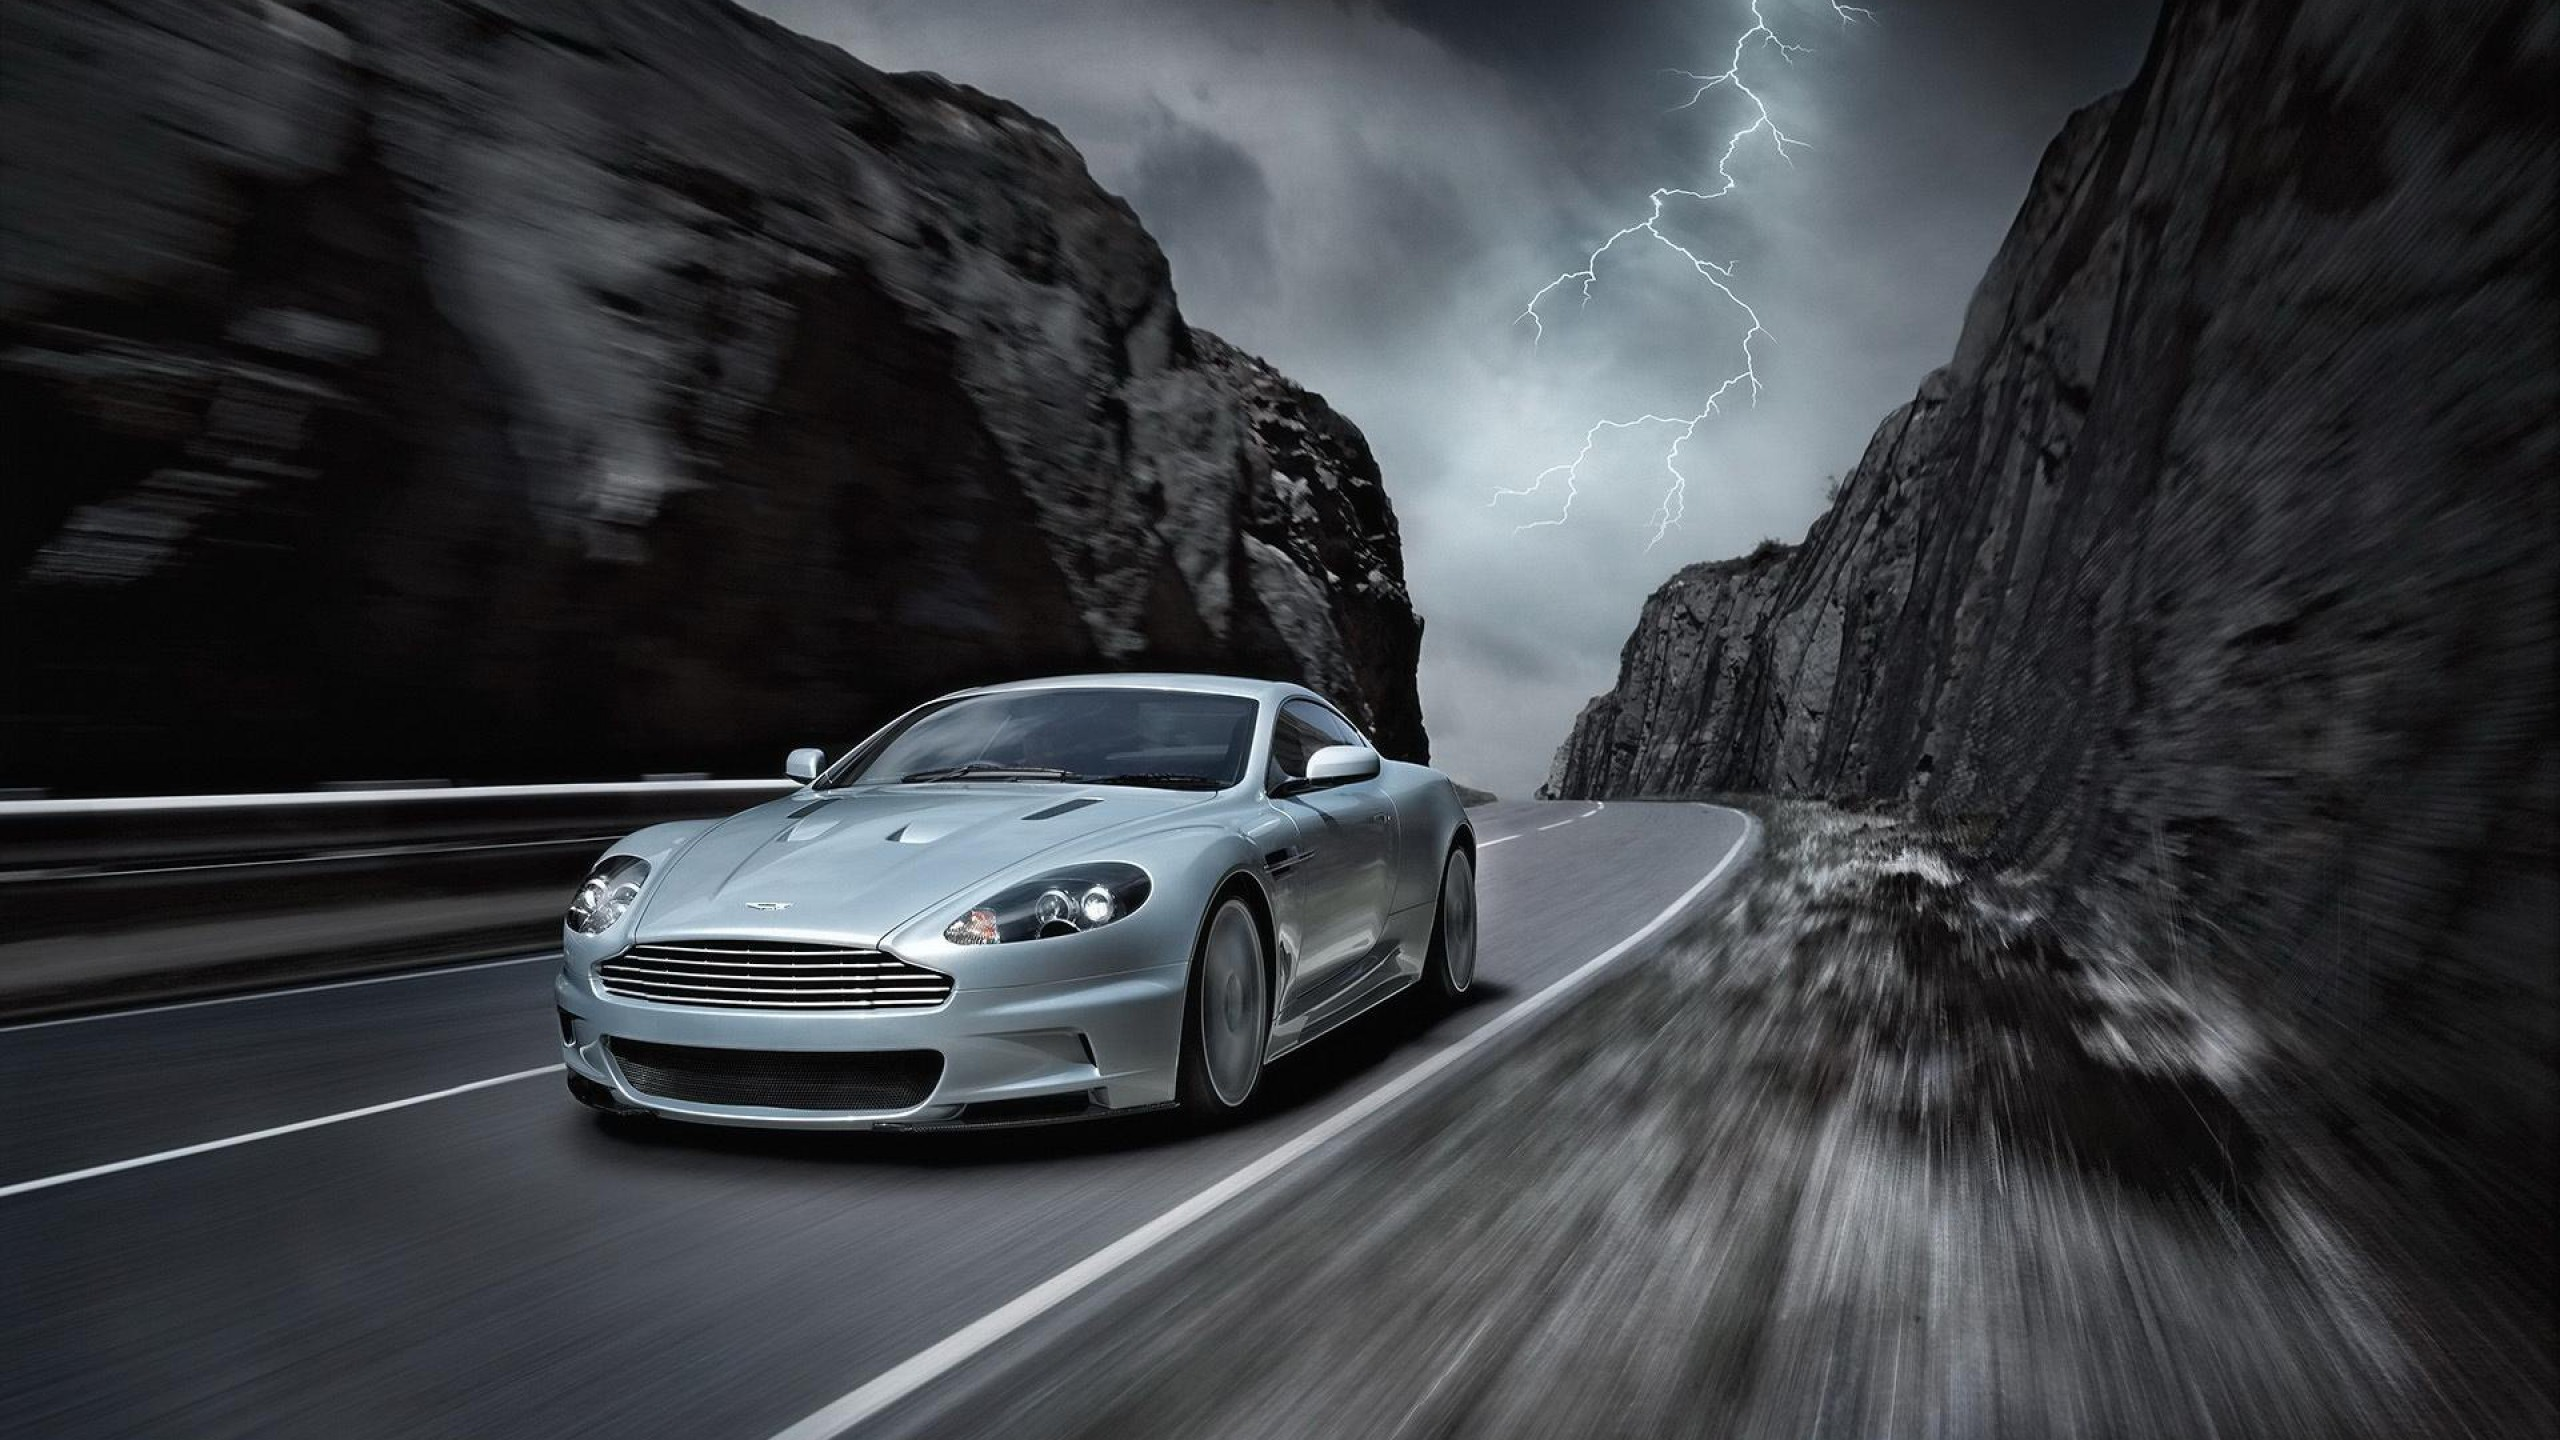 Aston Martin Wallpapers | Aston Martin Full HD Quality Wallpapers